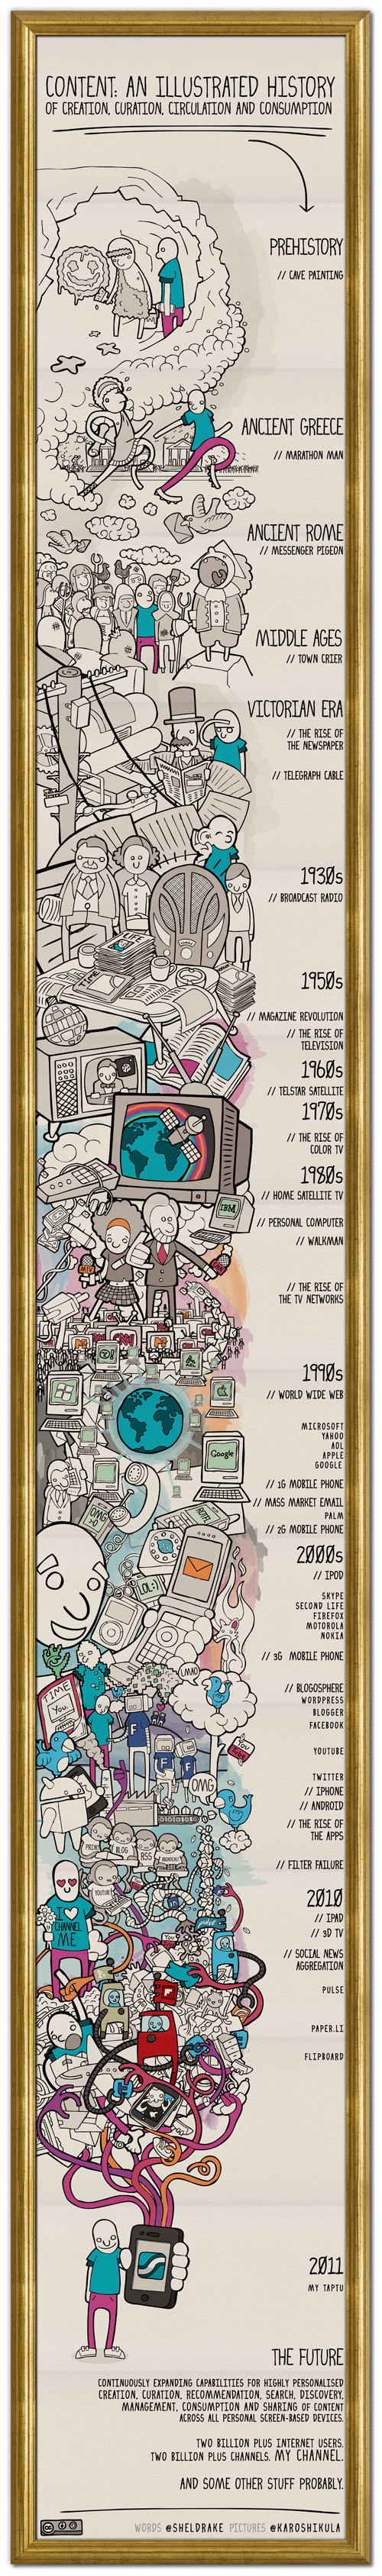 An Illustrated History of Media Content